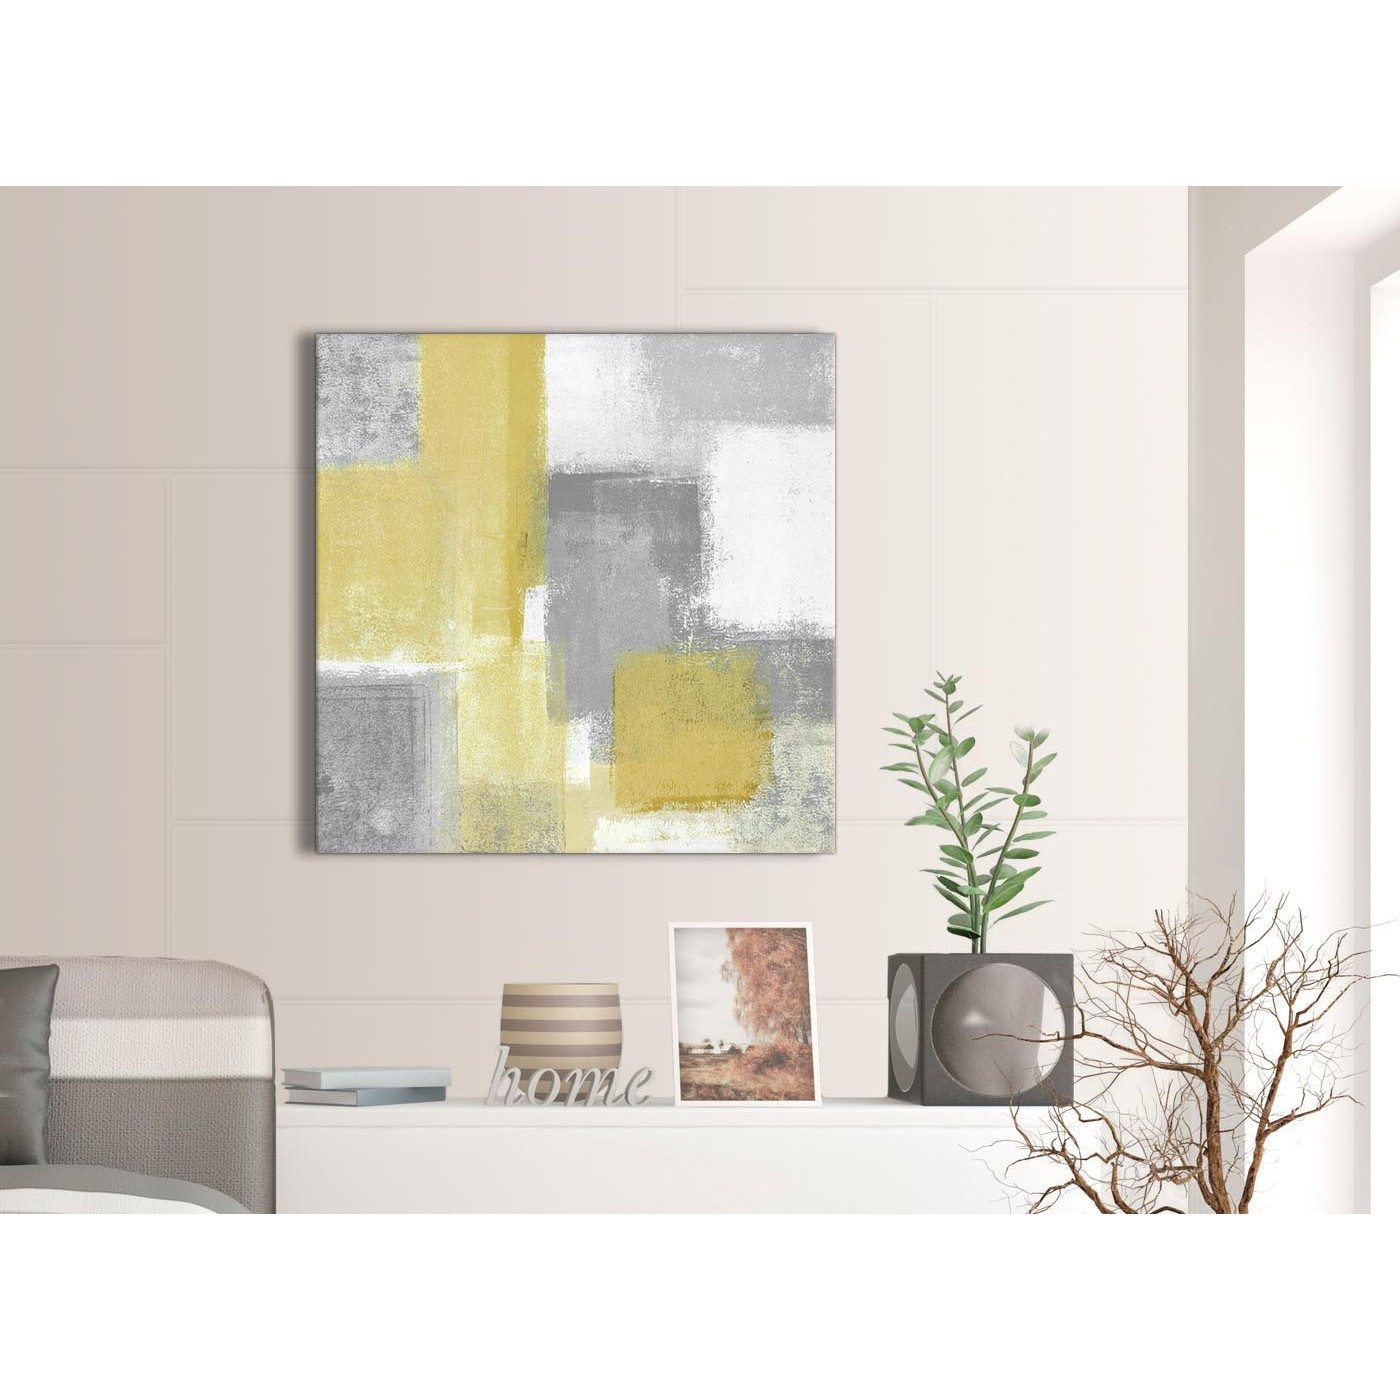 Mustard Accessories For Living Room Mustard Yellow Grey Abstract Living Room Canvas Pictures